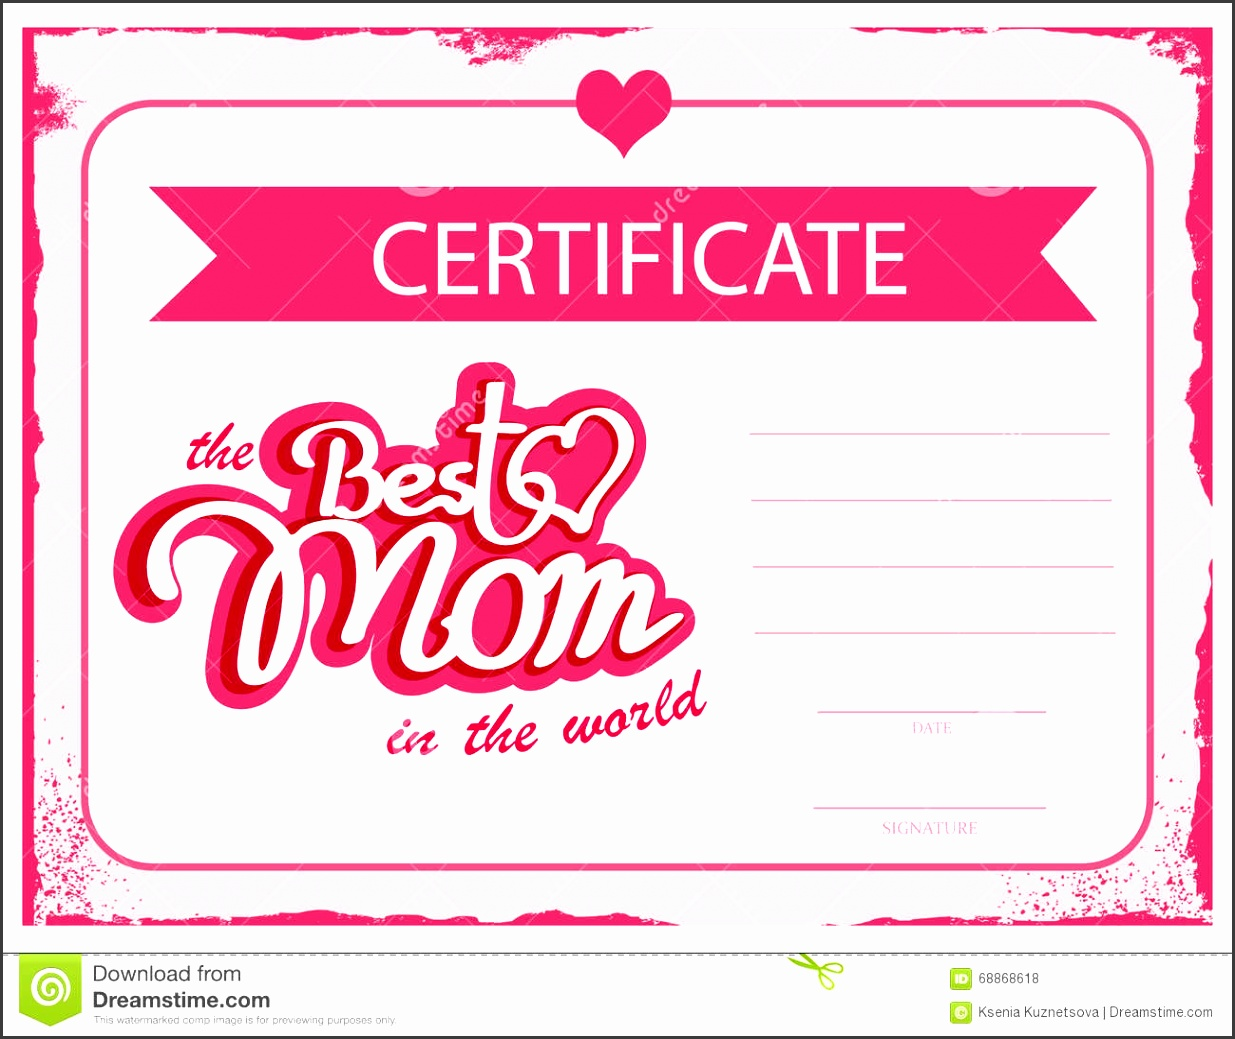 Template vector certificate Best mom in the world A t certificate for mothers day A diploma template